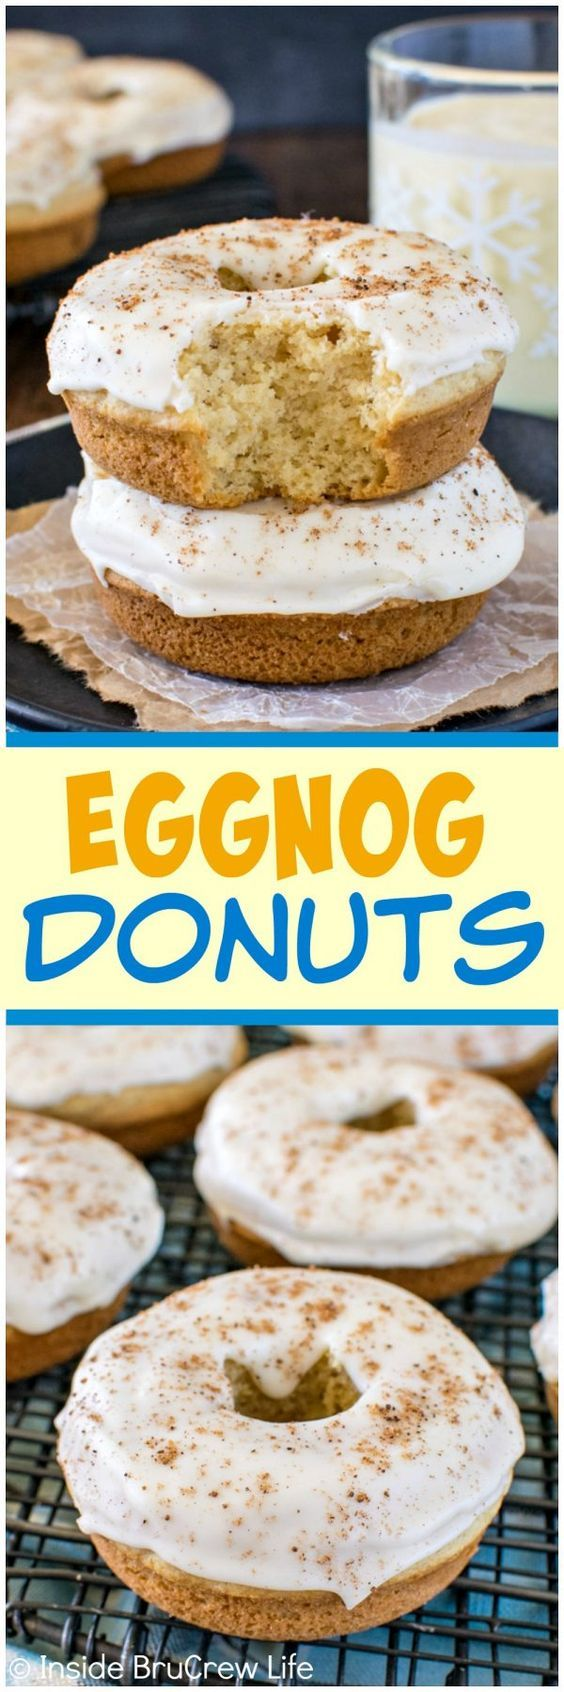 Eggnog Donuts - homemade baked donuts with two times the eggnog flavor! Great breakfast recipe for the holidays!